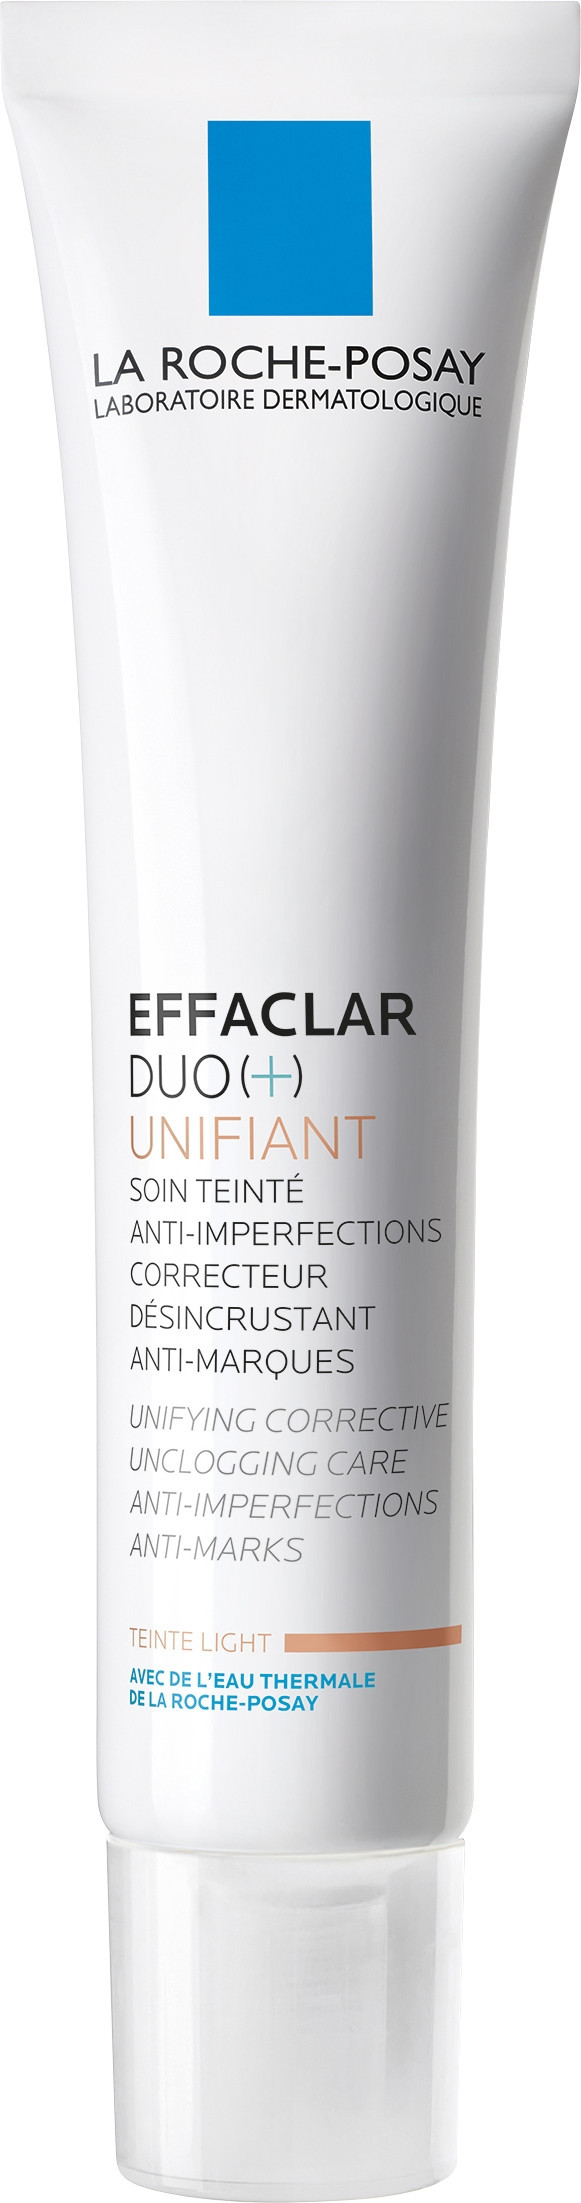 LRP EFFACLAR DUO+ UNIFIANT LIGHT 40ML